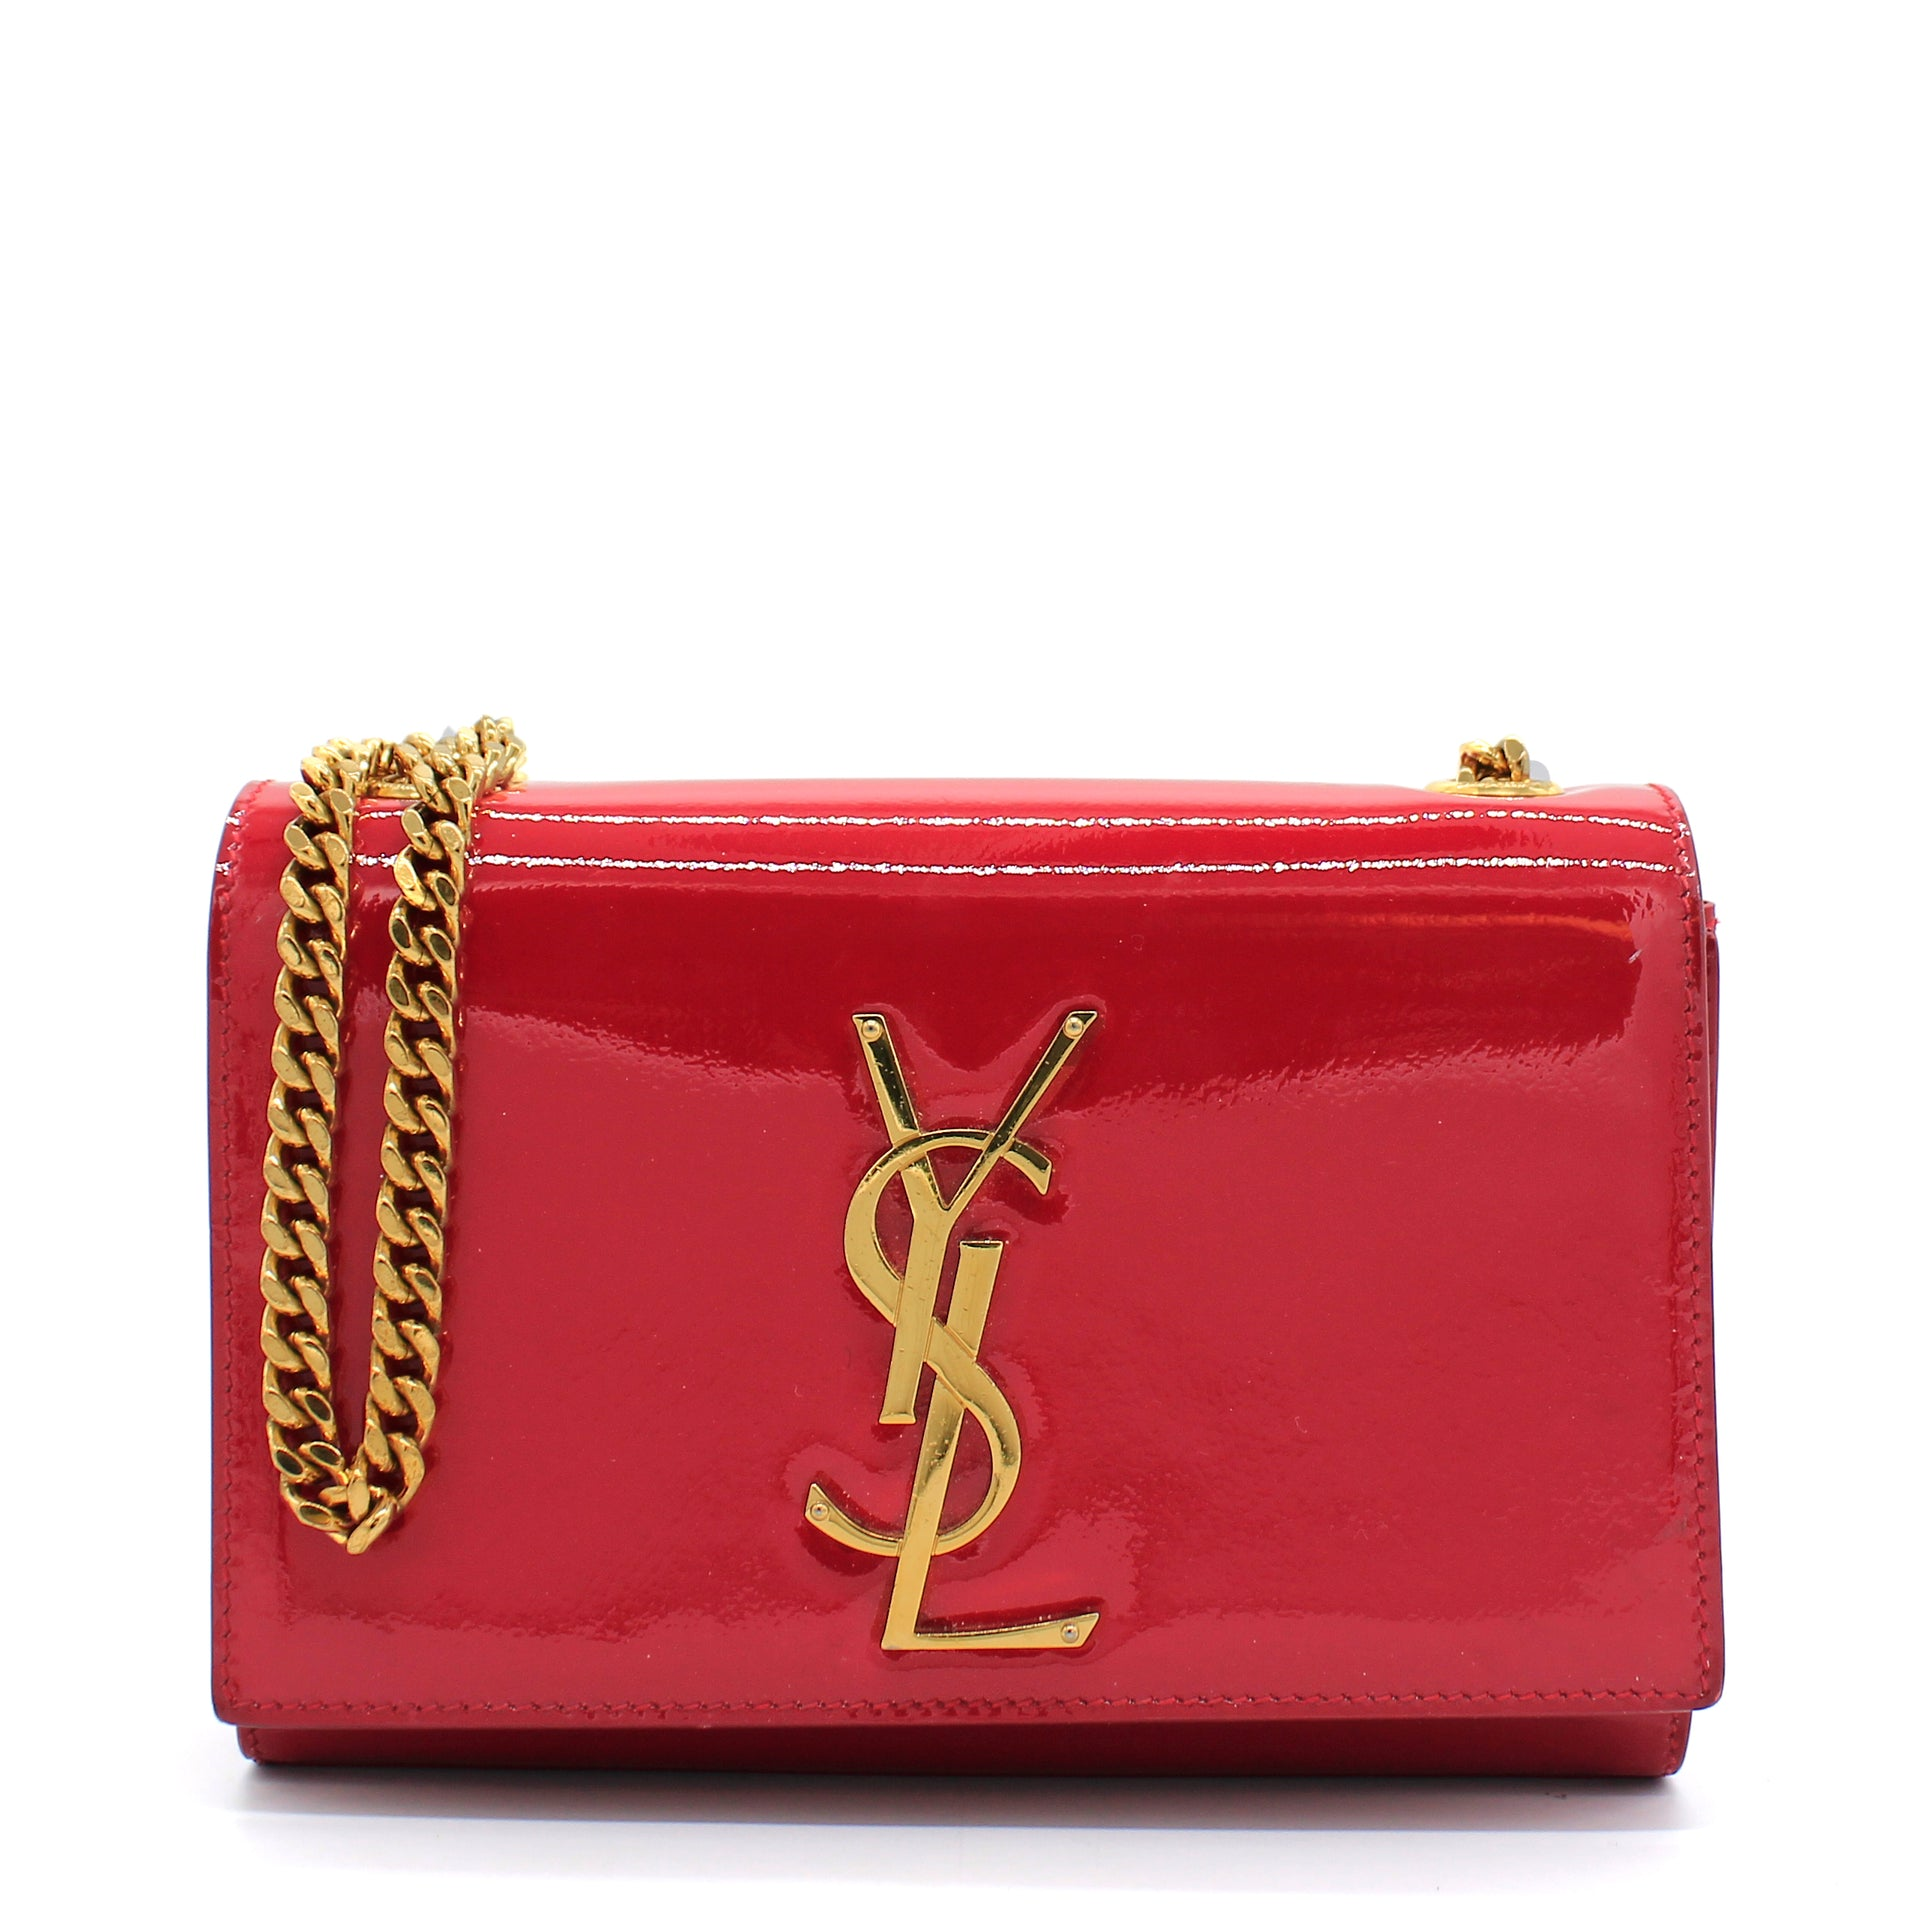 Small Kate Bag in Red Patent Leather